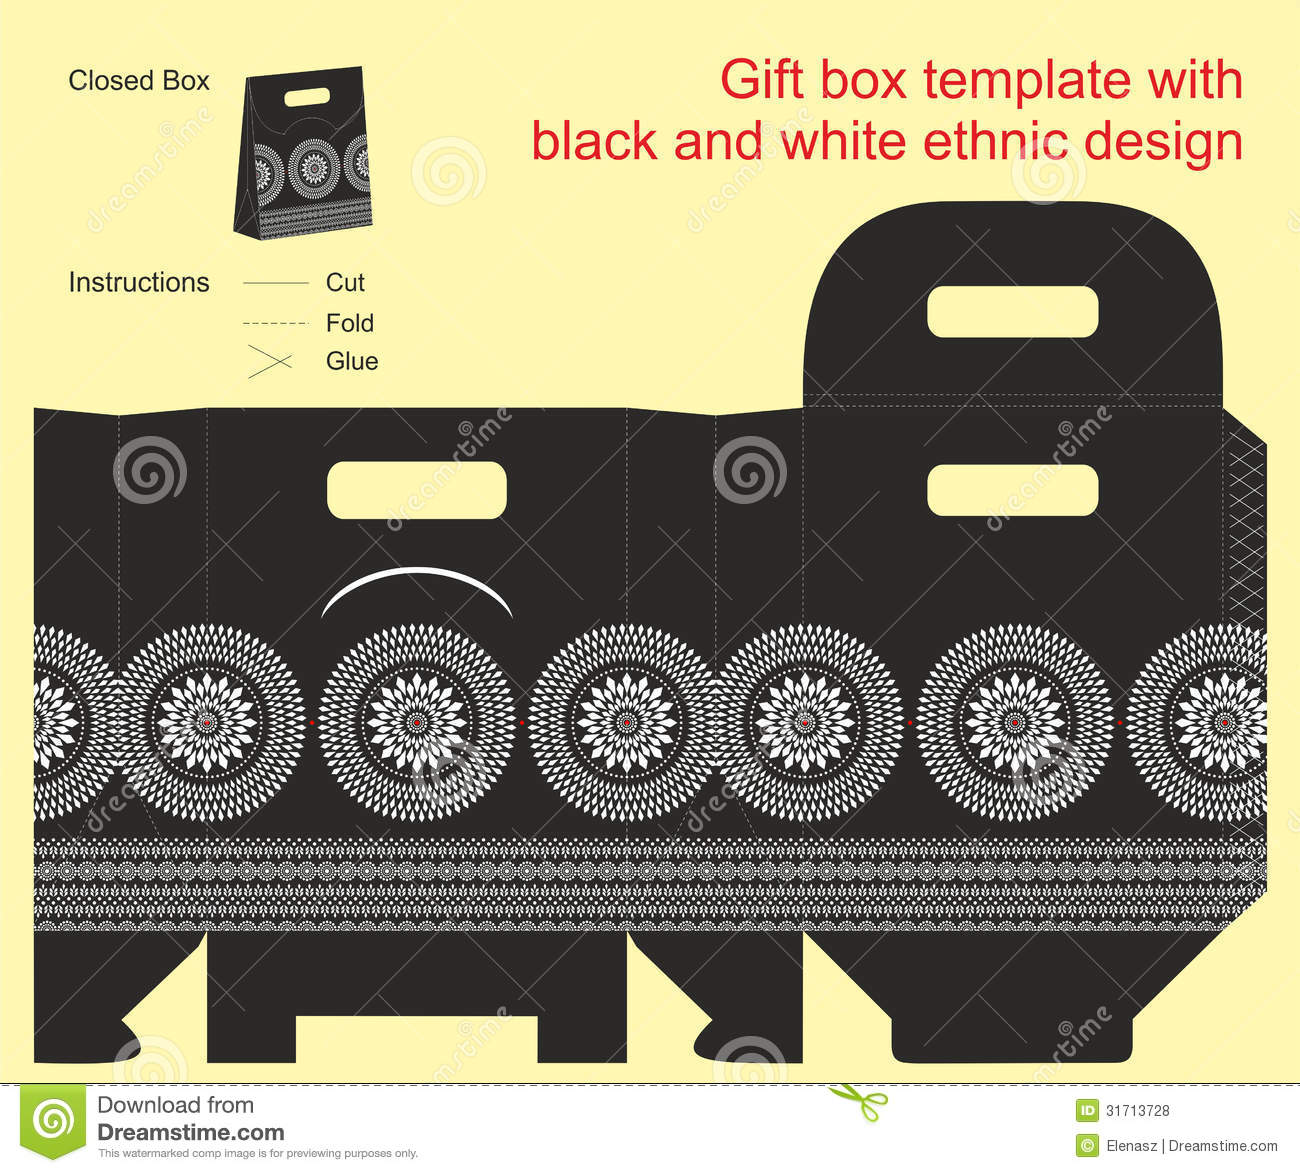 gift box template stock vector. image of cover, ceremony - 31713728, Powerpoint templates